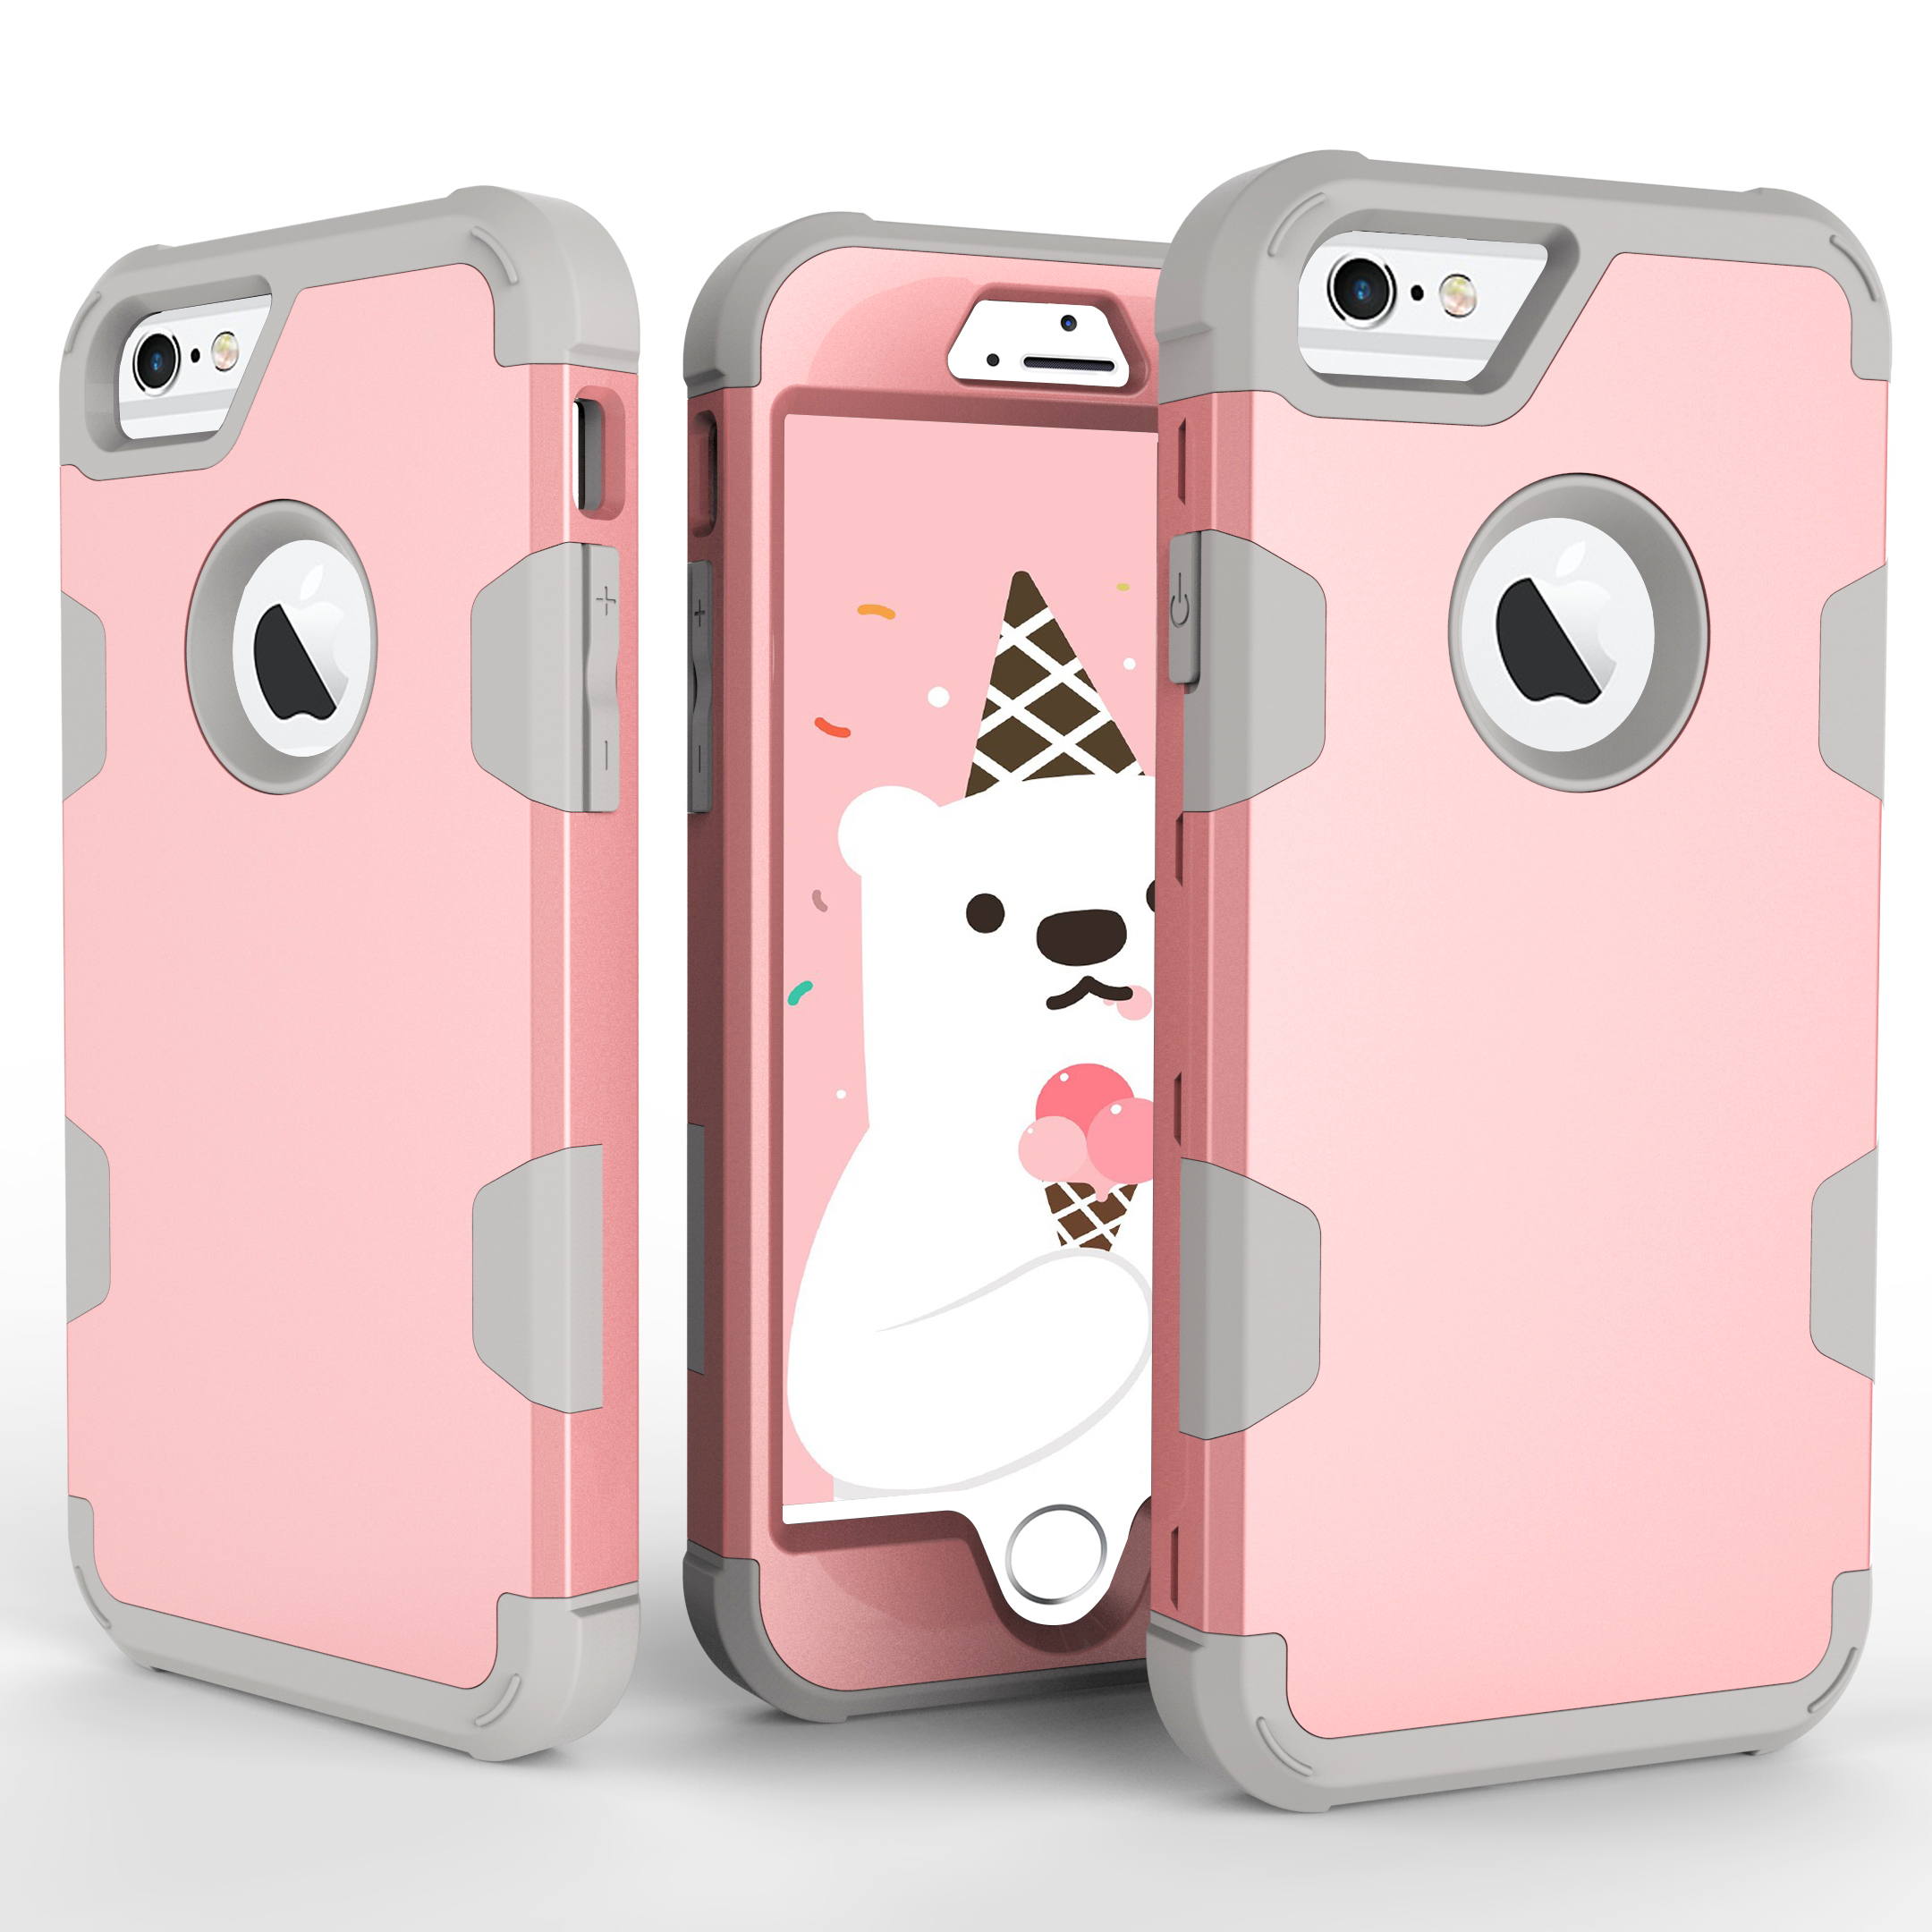 For iPhone 6/6S PC+ Silicone 2 in 1 Hit Color Tri-proof Shockproof Dustproof Anti-fall Protective Cover Back Case Rose gold + gray